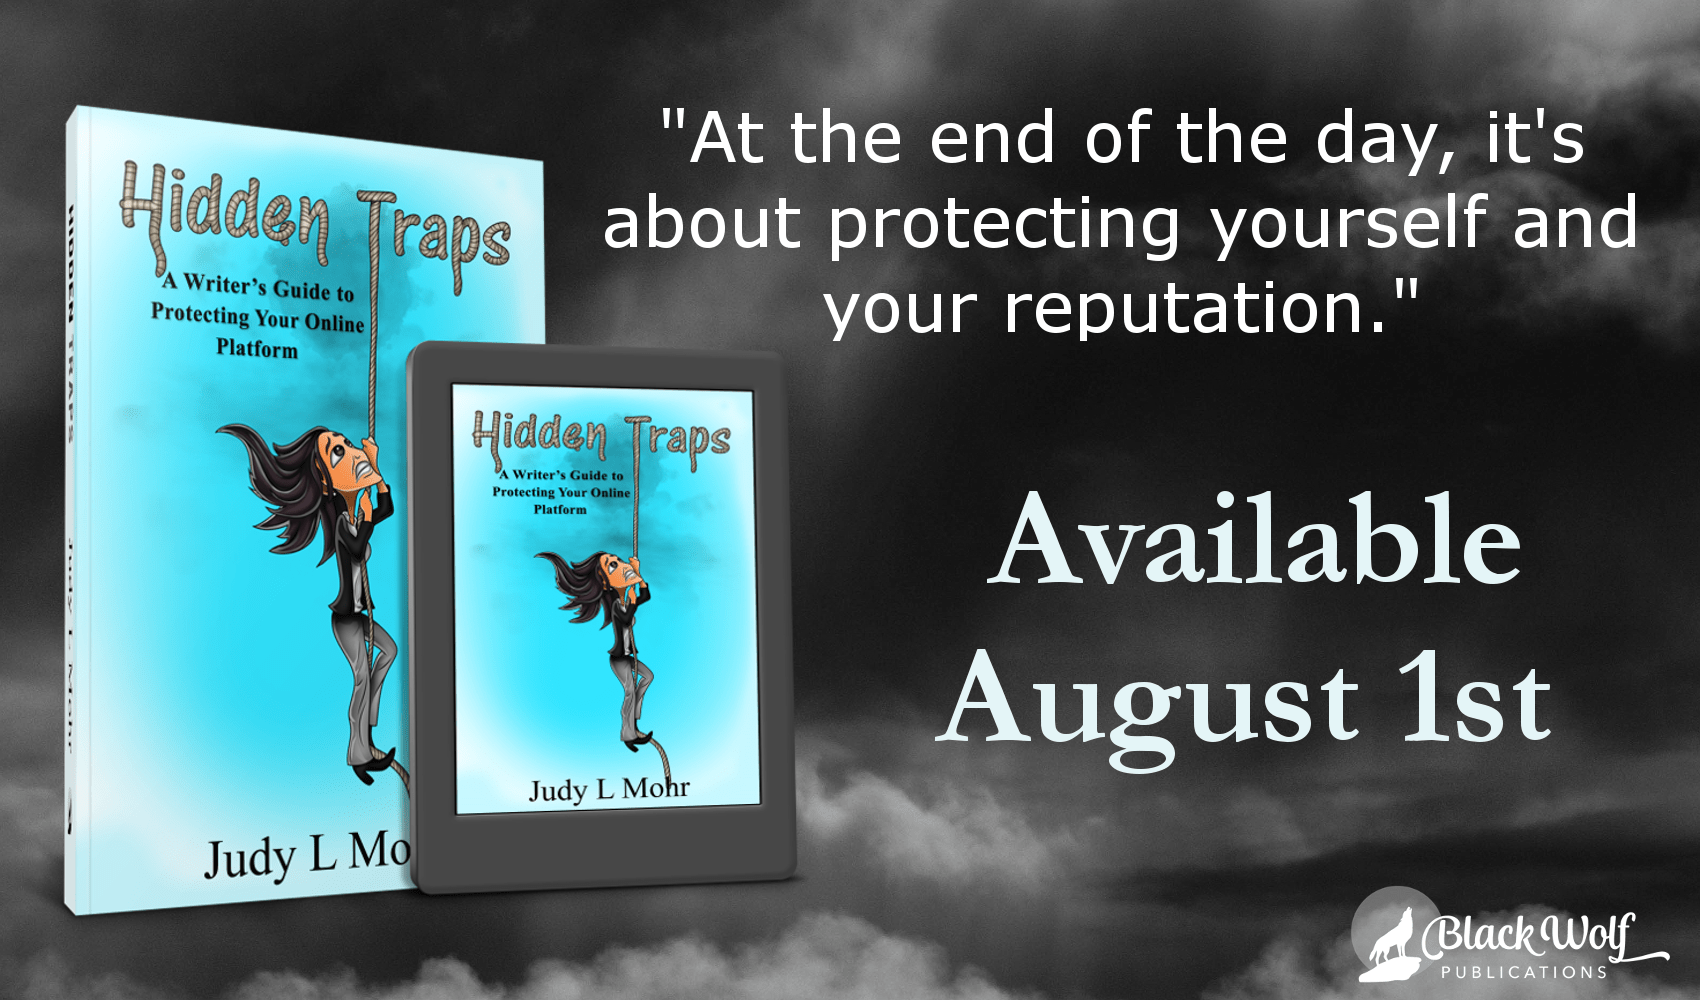 Hidden Traps by Judy L Mohr (Available August 1st)